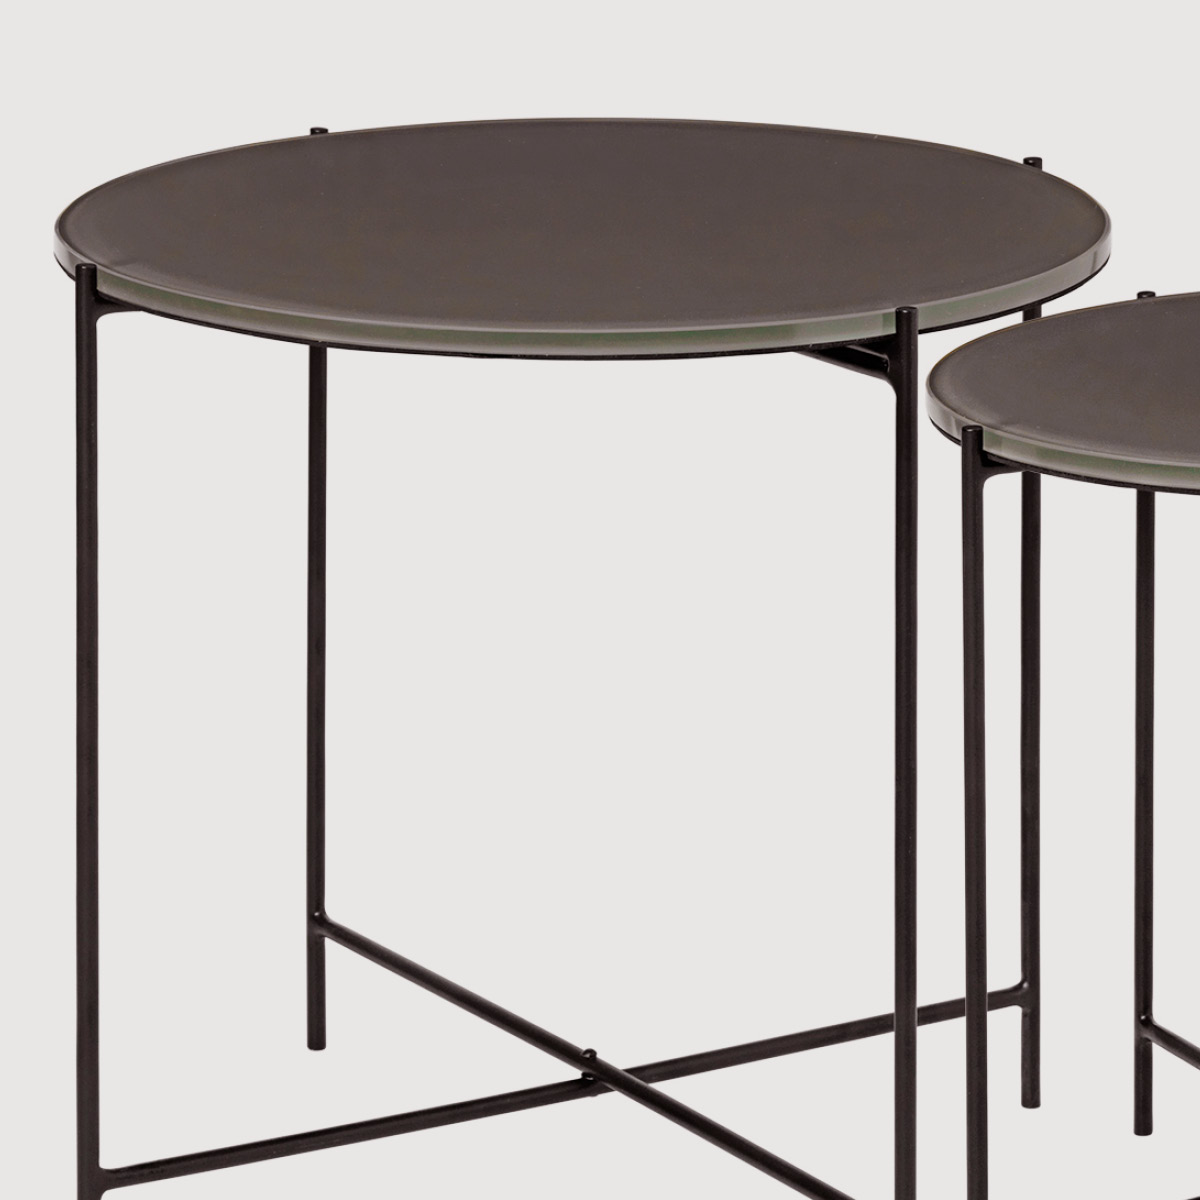 Freja Glass Tables – Taupe gallery image